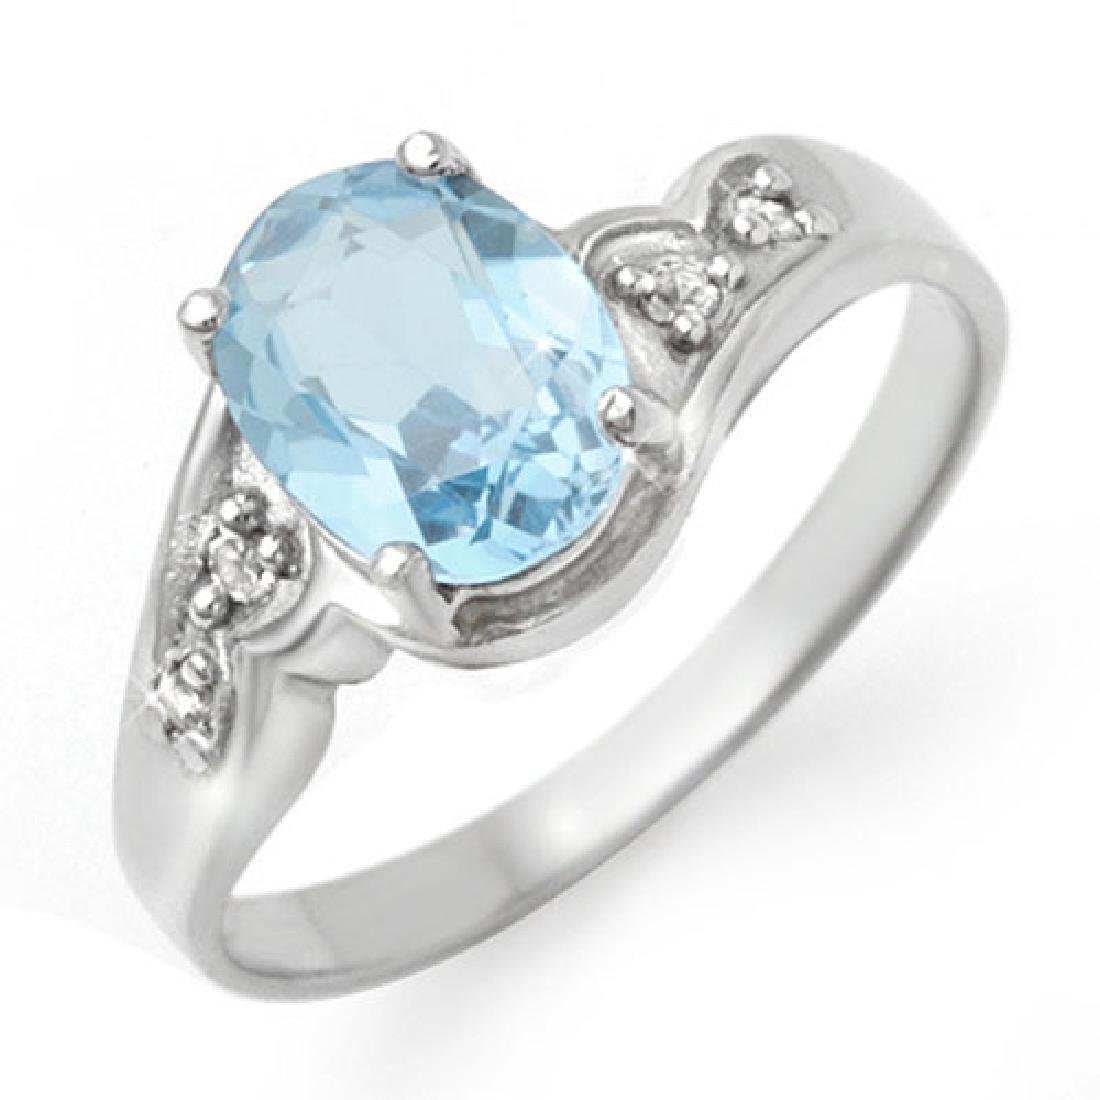 1.26 CTW Blue Topaz & Diamond Ring 18K White Gold